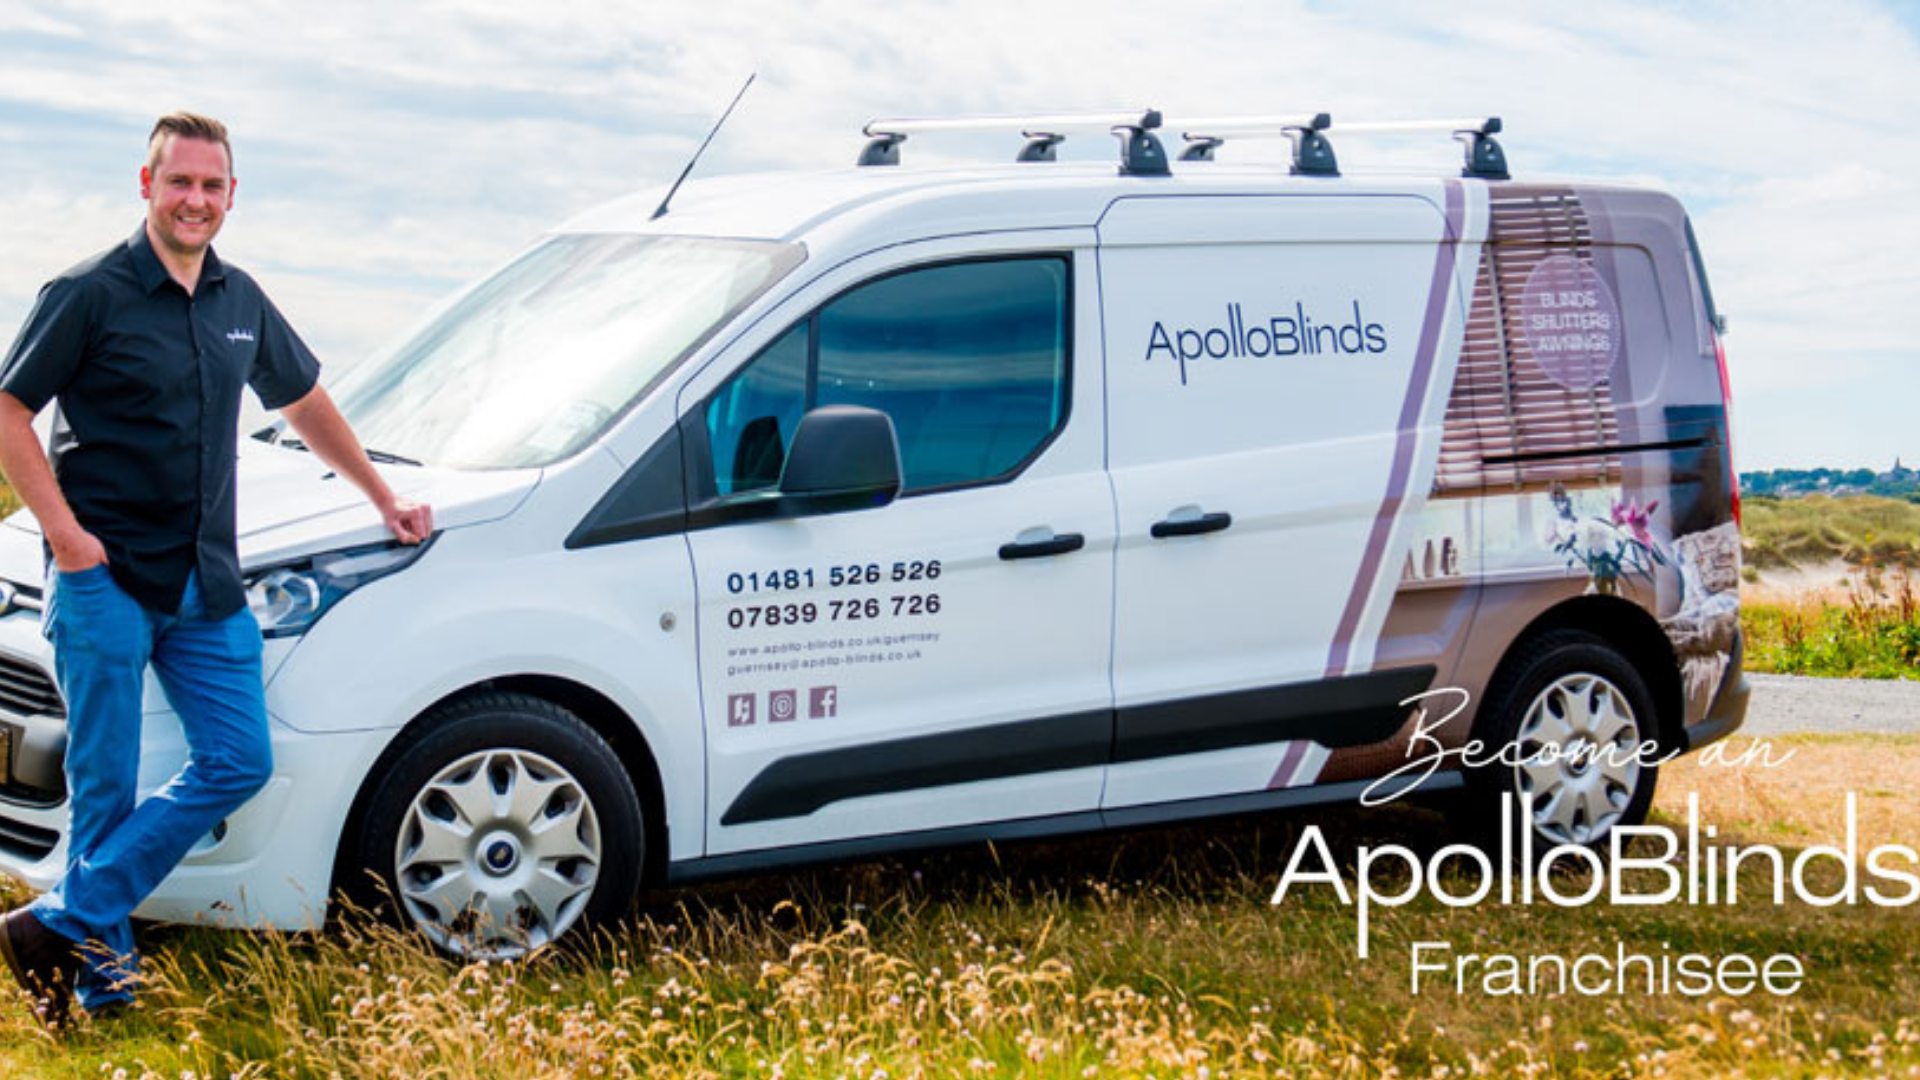 Apollo Blinds to capitalise on lockdown home improvement boom by launching new entry-level pricing plan as part of franchise recruitment drive